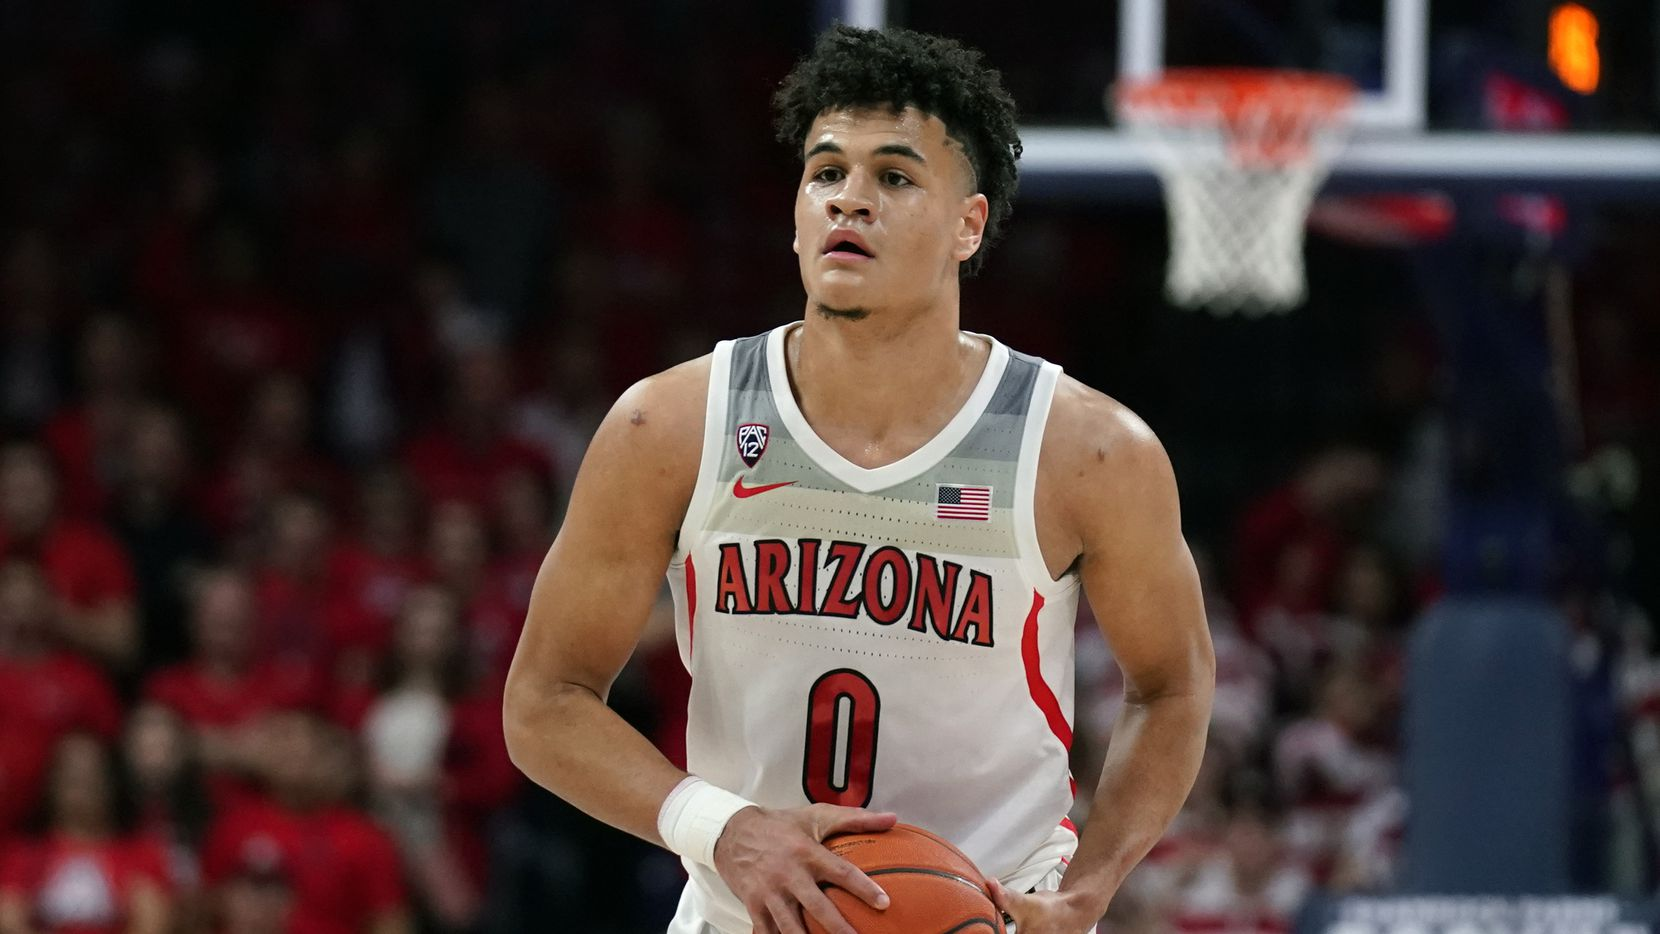 Arizona guard Josh Green (0) in the first half during an NCAA college basketball game against Arizona State, Saturday, Jan. 4, 2020, in Tucson, Ariz. (AP Photo/Rick Scuteri)